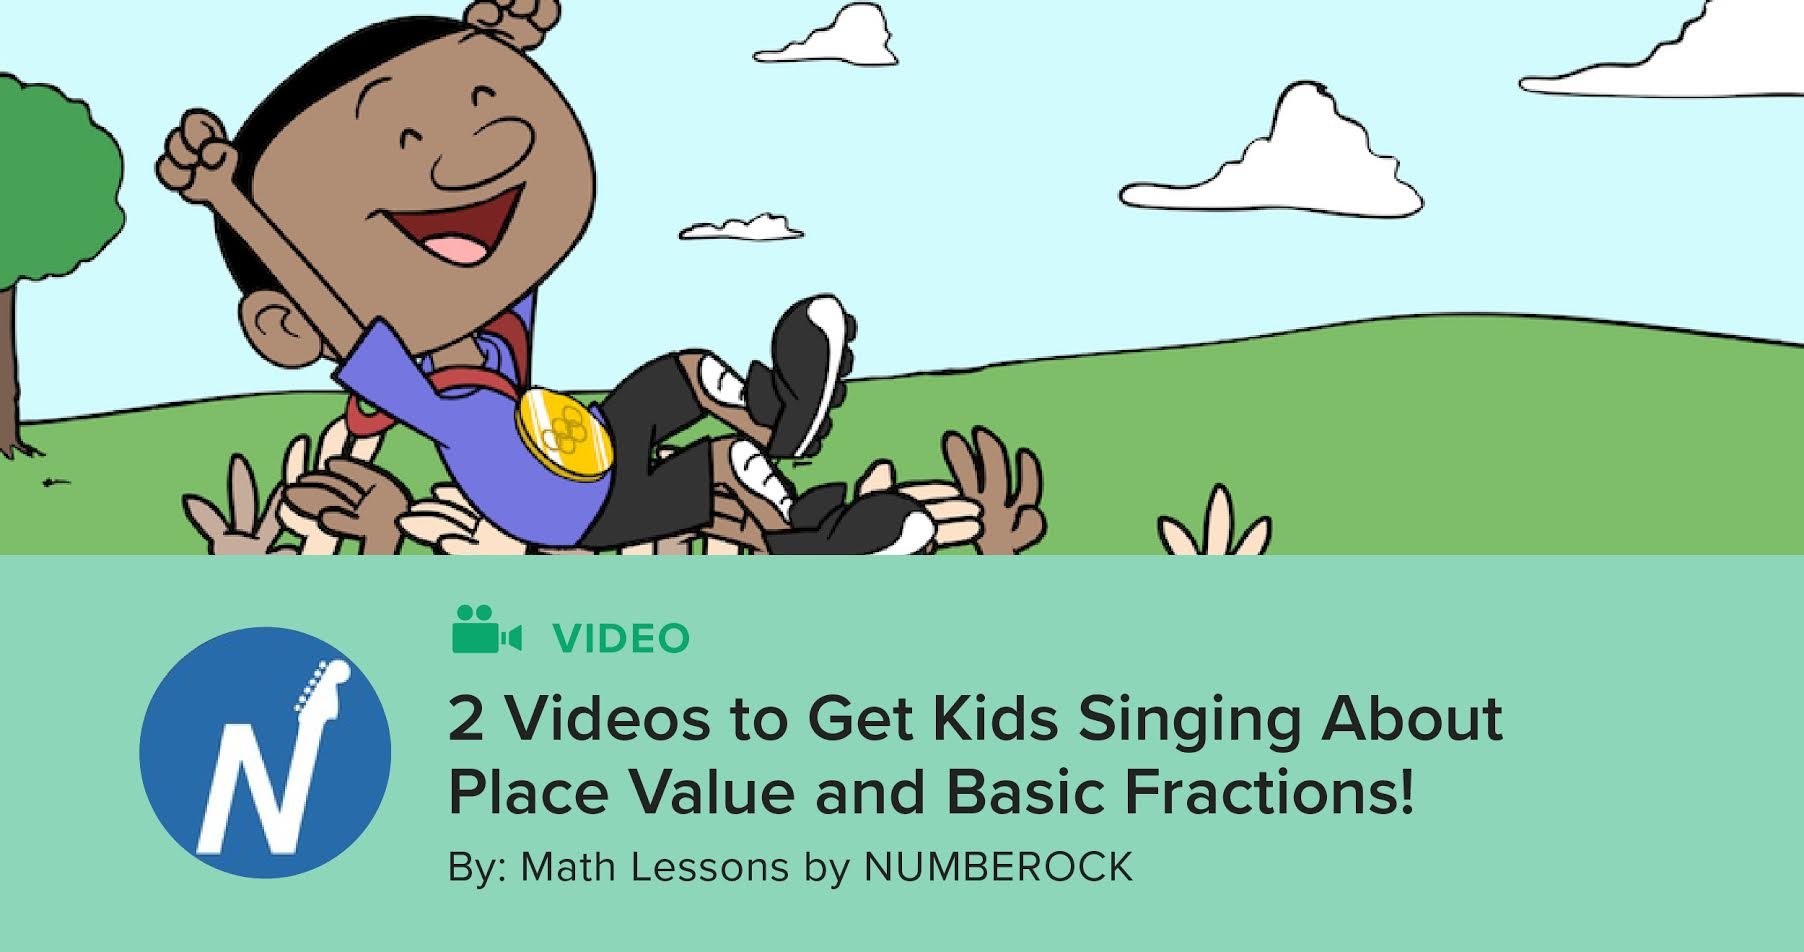 2 Videos to Get Kids Singing About Place Value and Basic Fractions ...